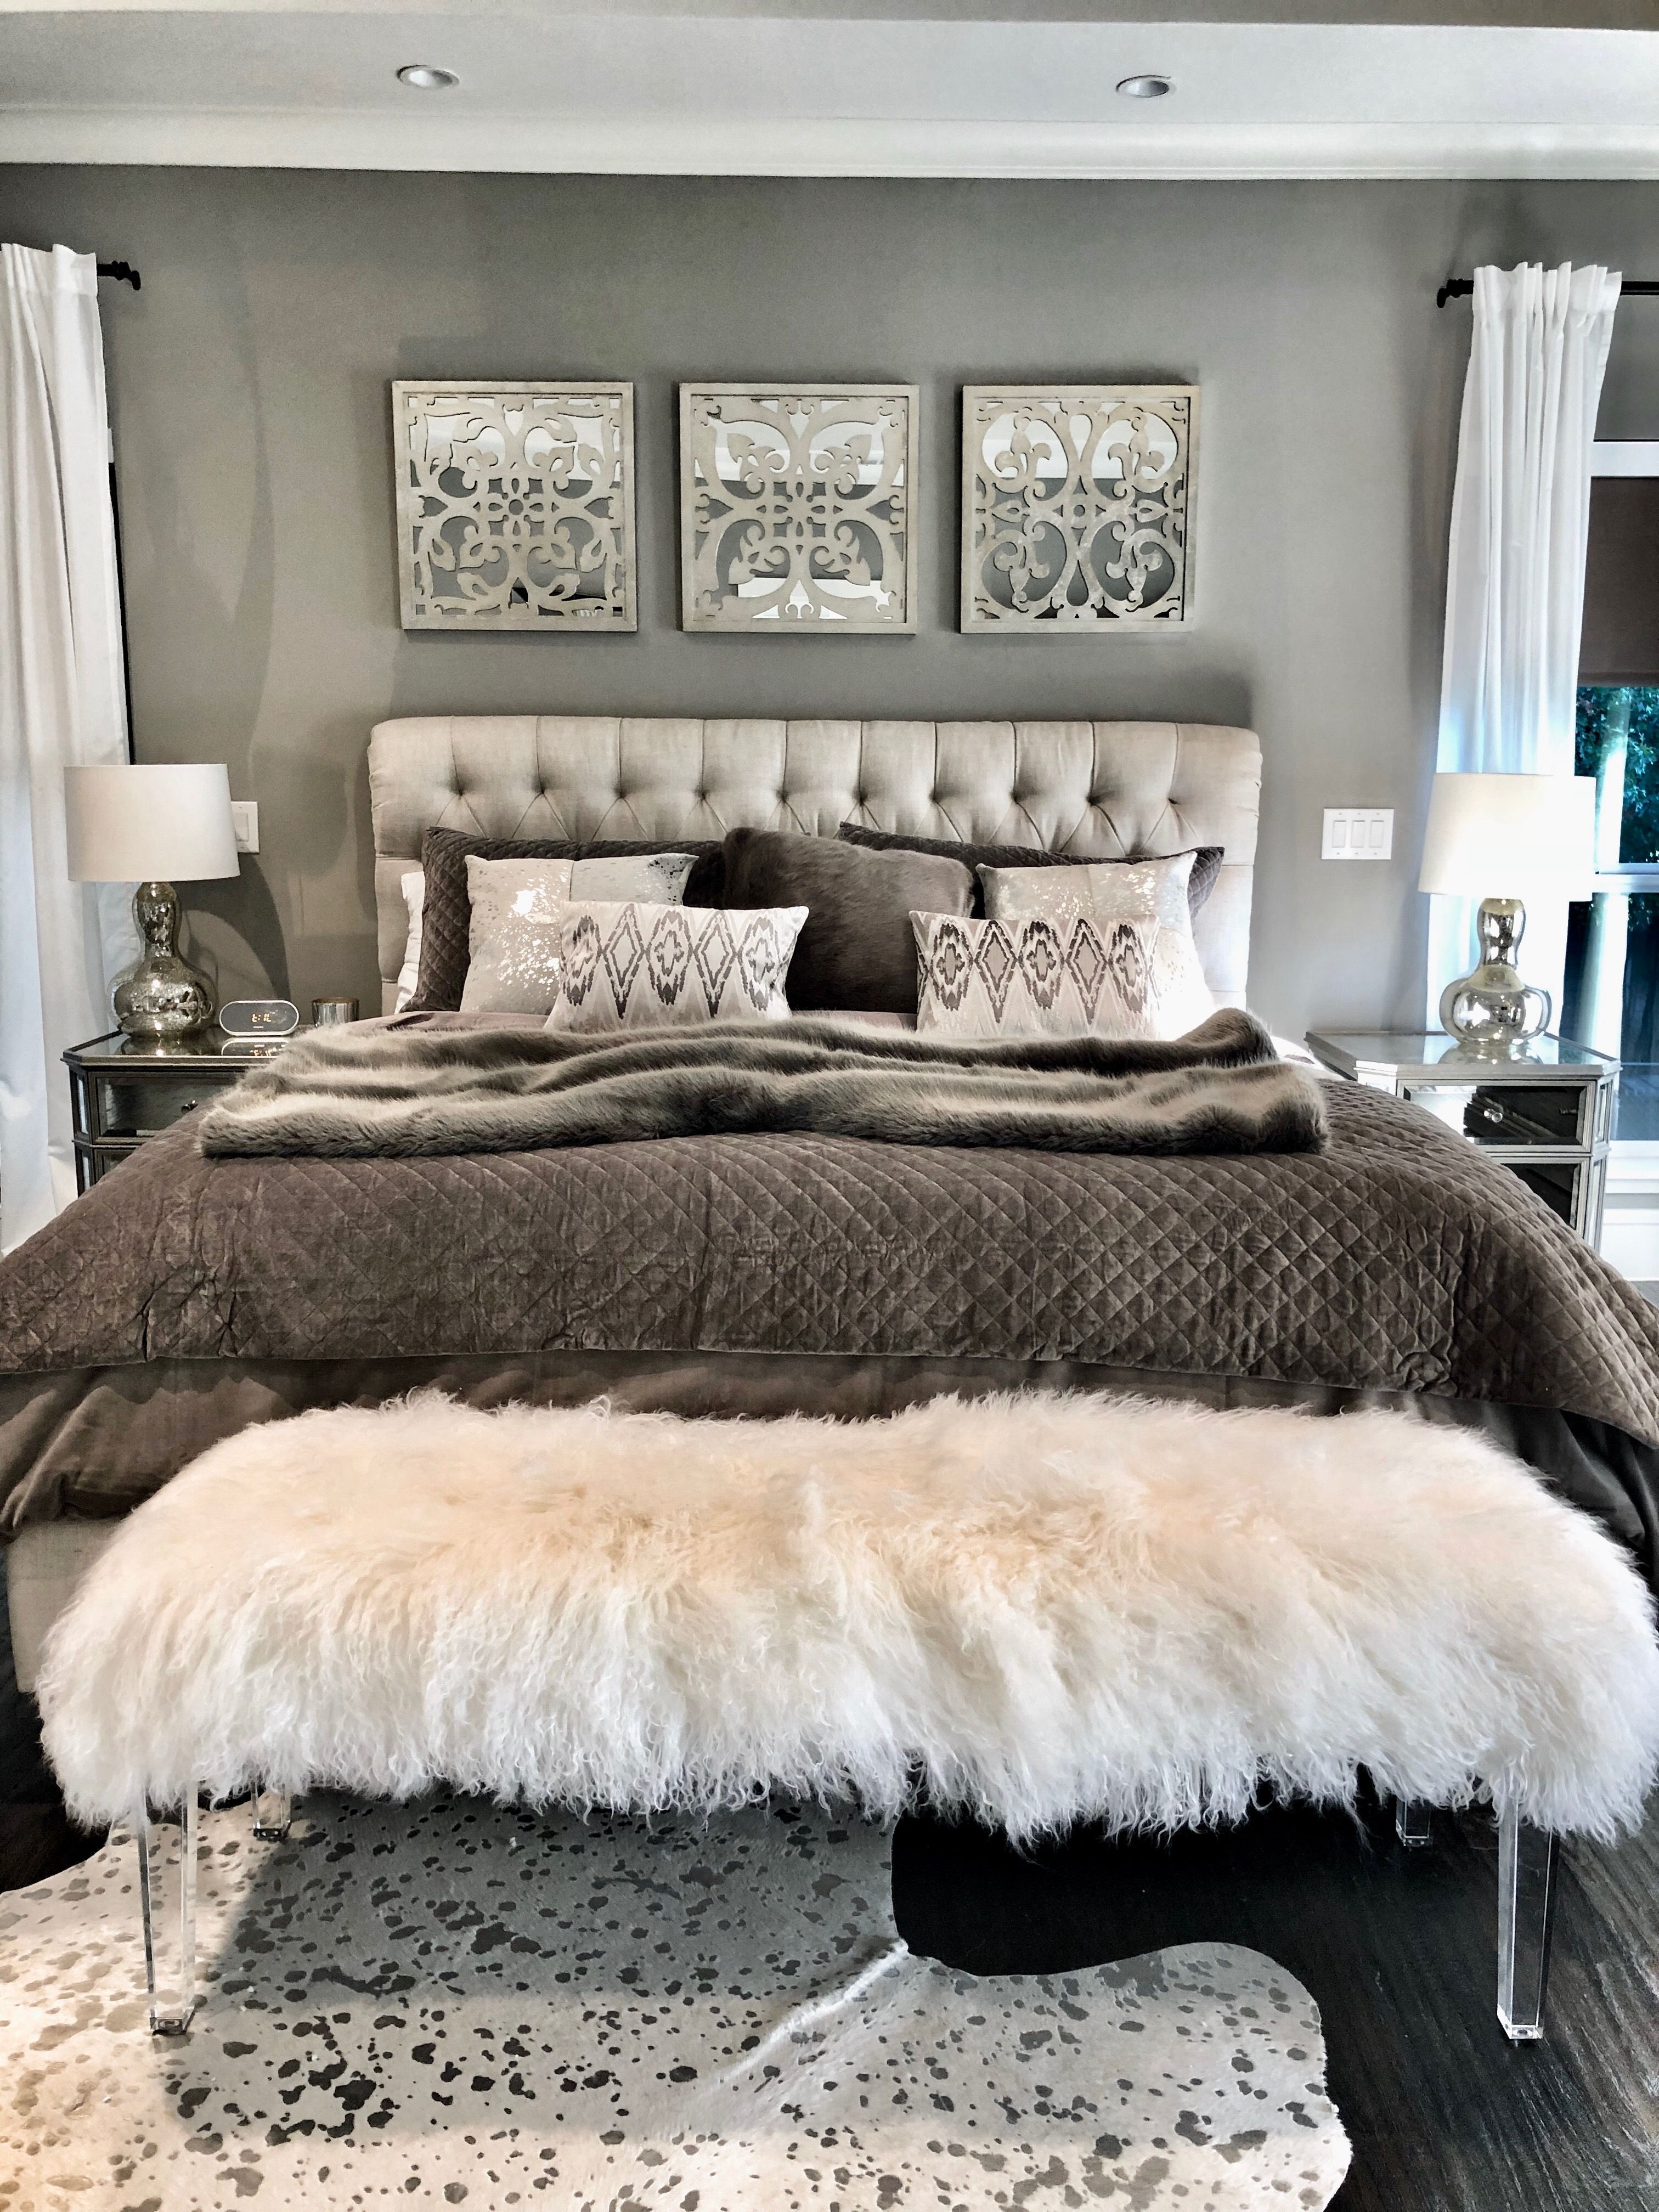 In Love With My Grey Master Bedroom Aesthetic The Tufted